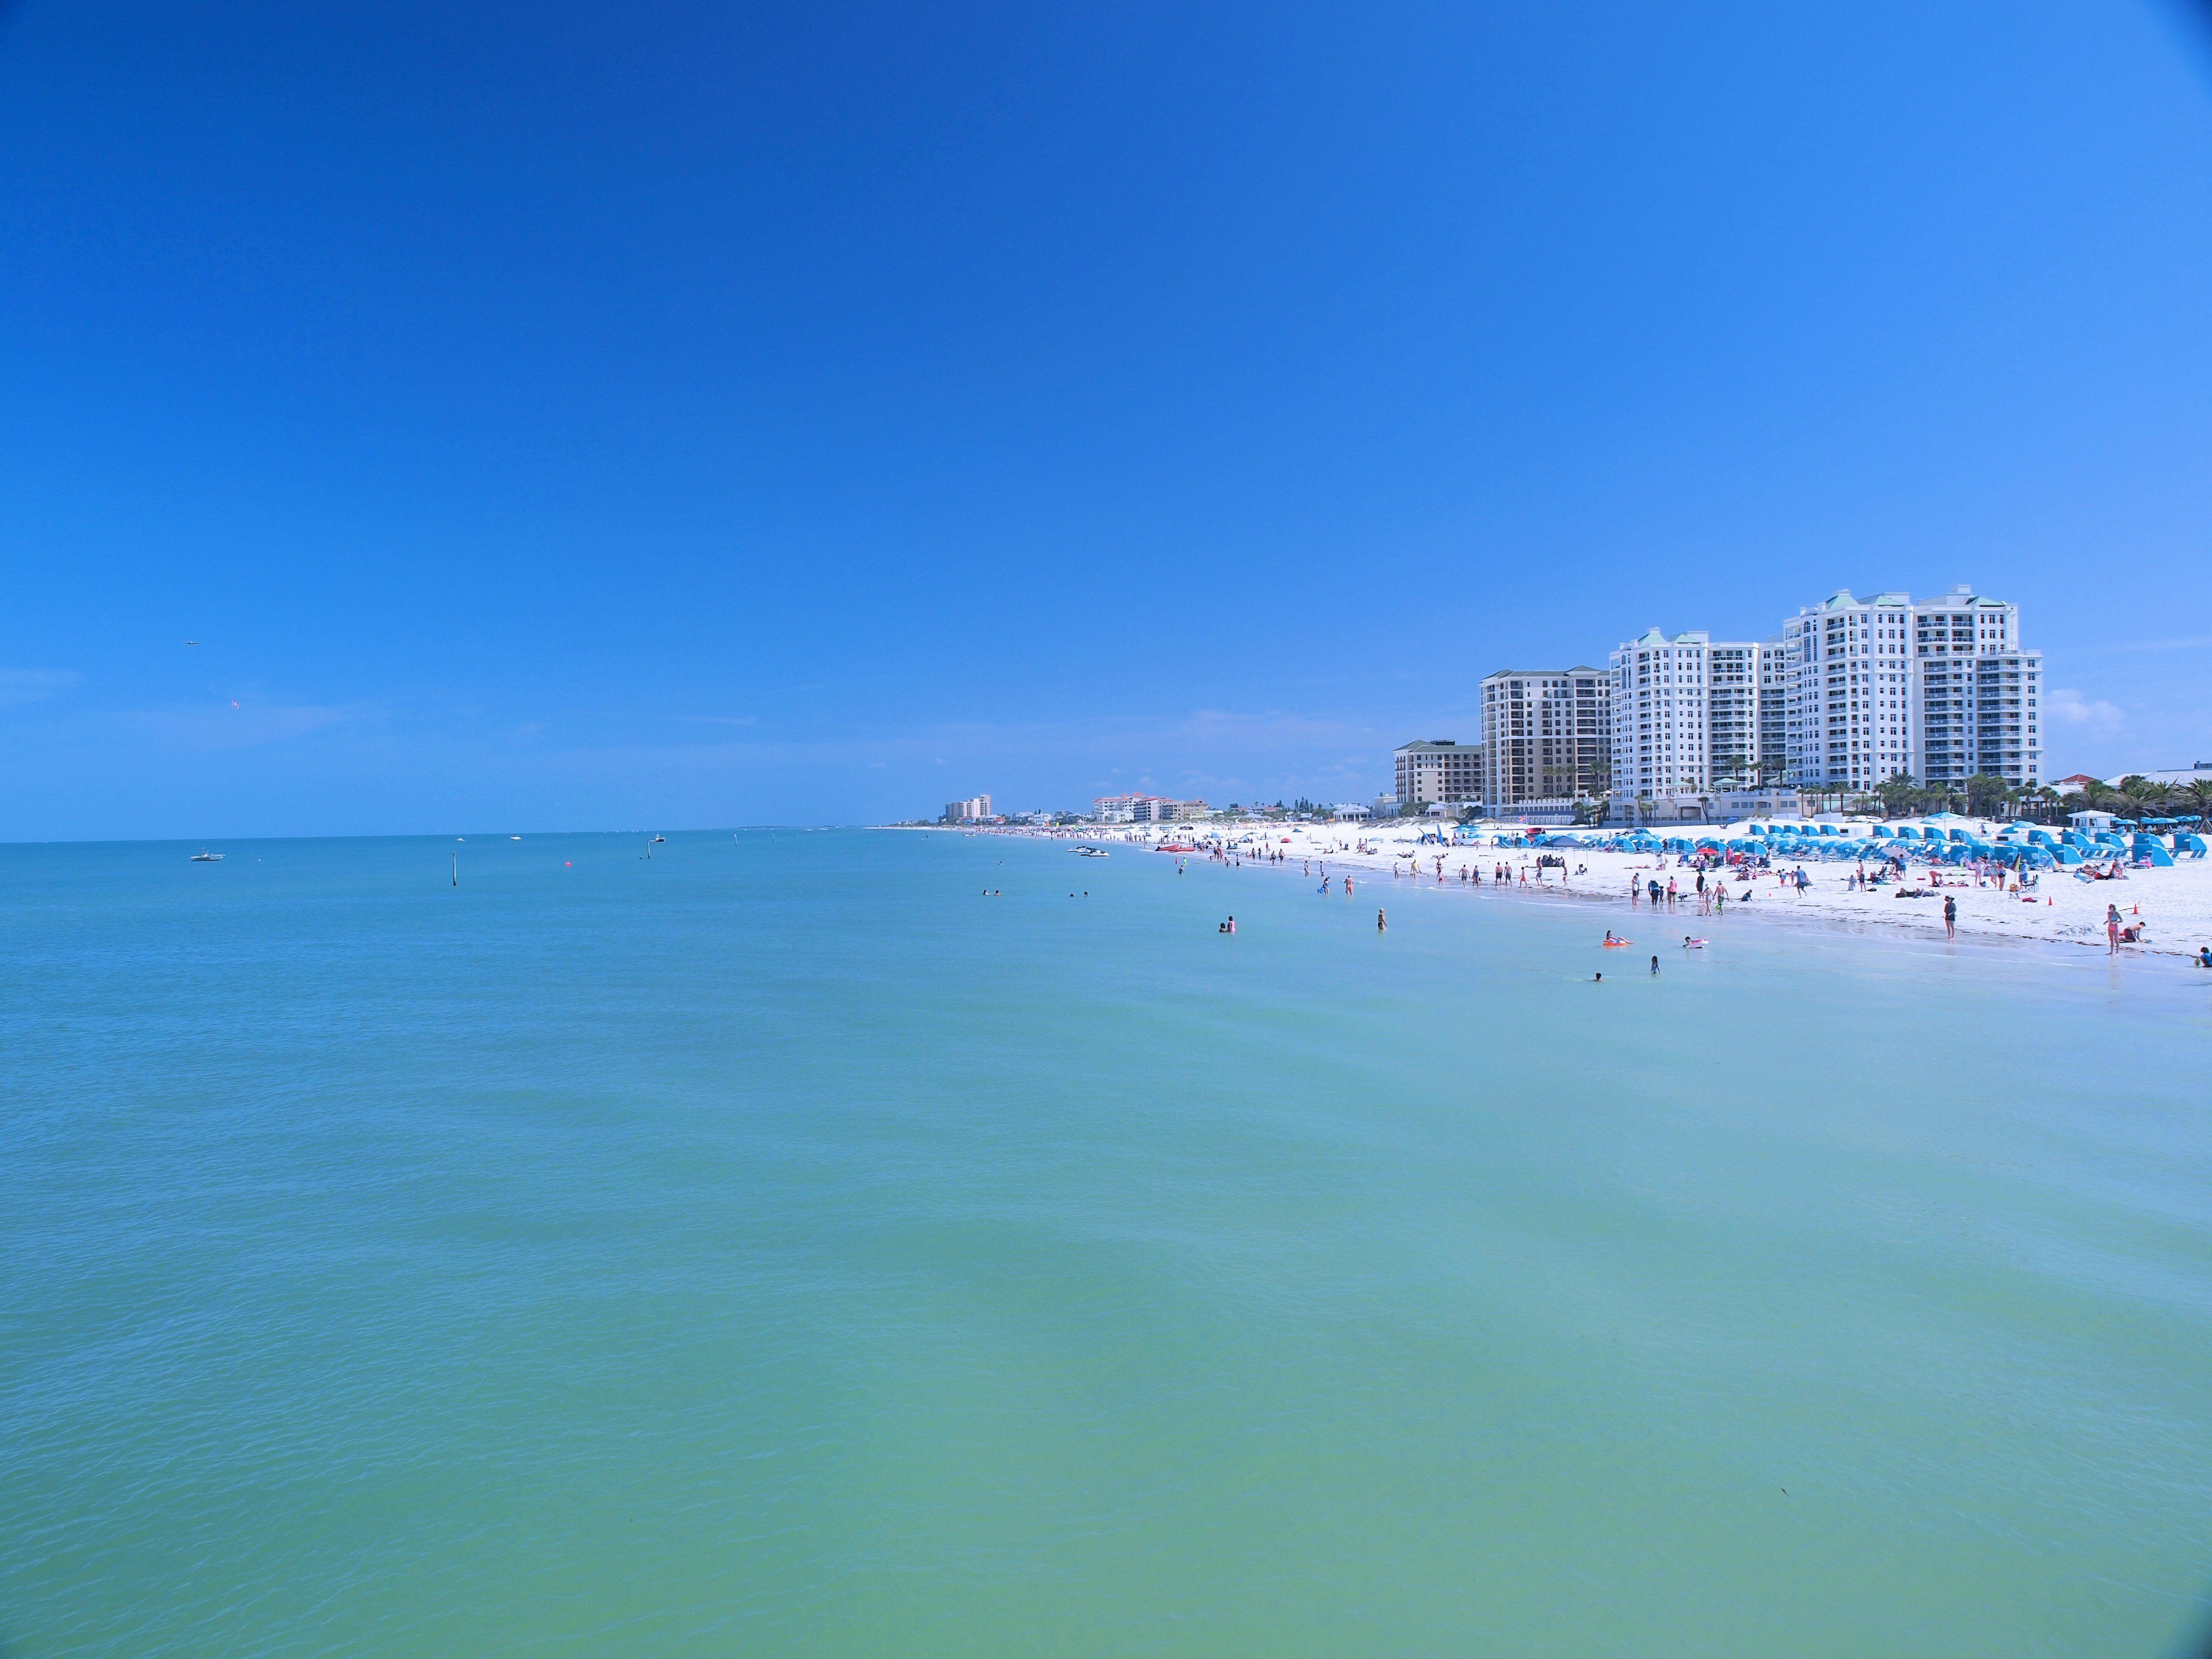 This long expanse of pristine white sand is Florida's crown jewel. The calm and clear water makes it an ideal beach for